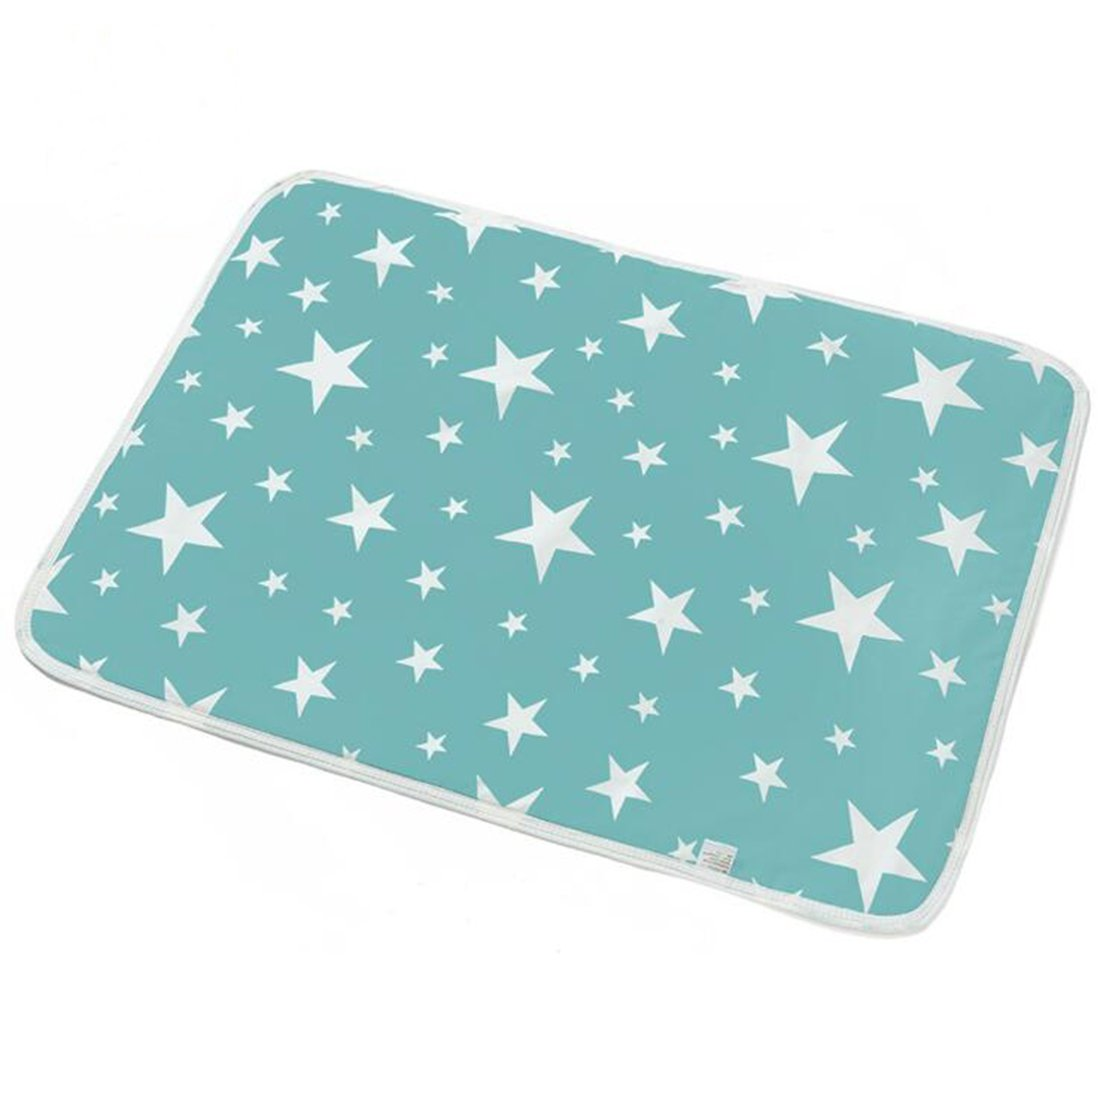 20*28, H//1pc October Elf Unisex Baby Waterproof Diaper Changing Mat Pad with Large Size